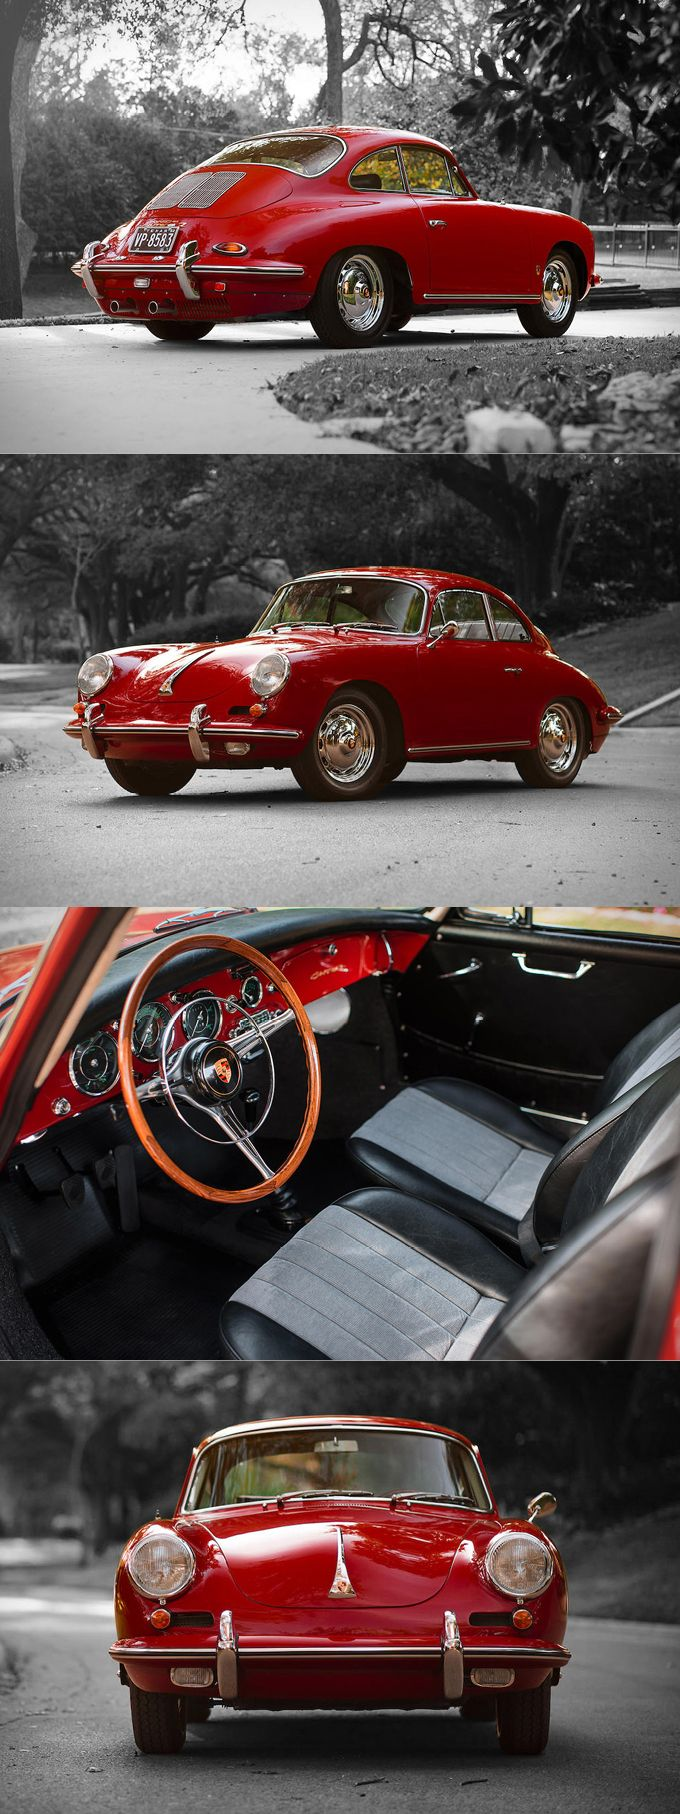 1962 porsche 356 carrera 2 310 produced 130hp f4 red germany 17 368 assurance. Black Bedroom Furniture Sets. Home Design Ideas